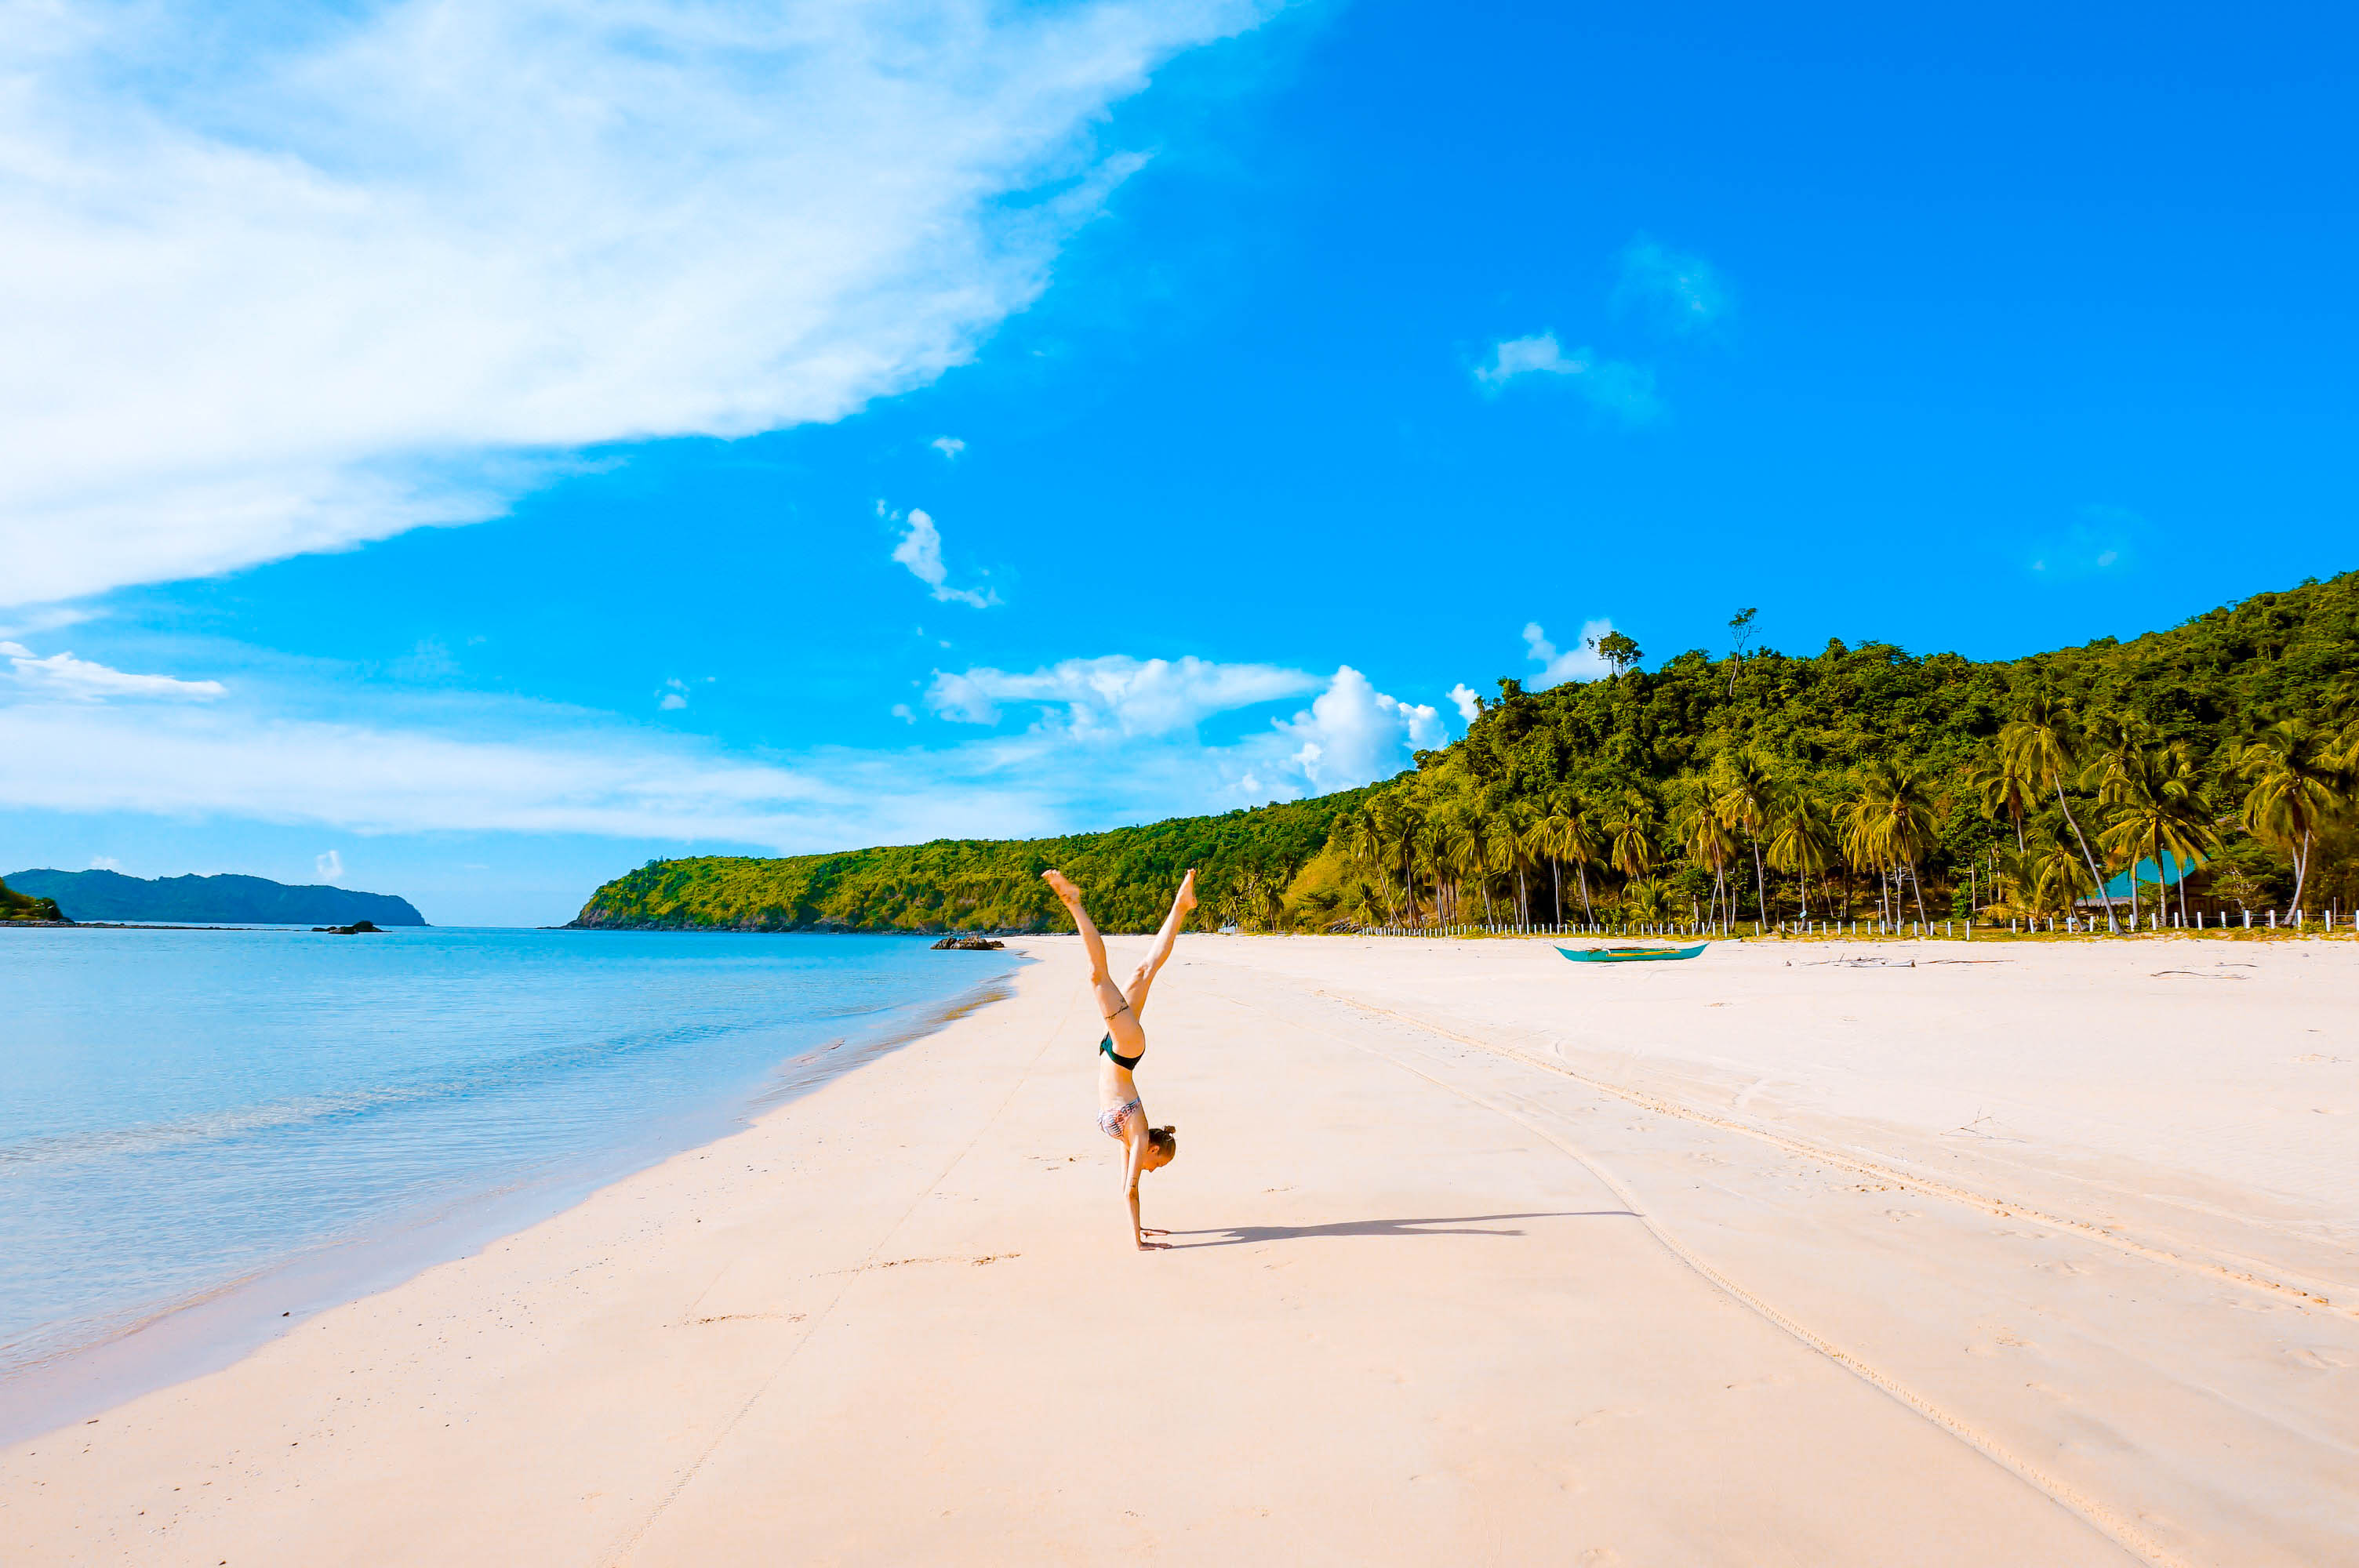 Woman in bikini doing a handstand on a white sand beach with coconut palm forests in the distance in El Nido, Palawan, Philippines